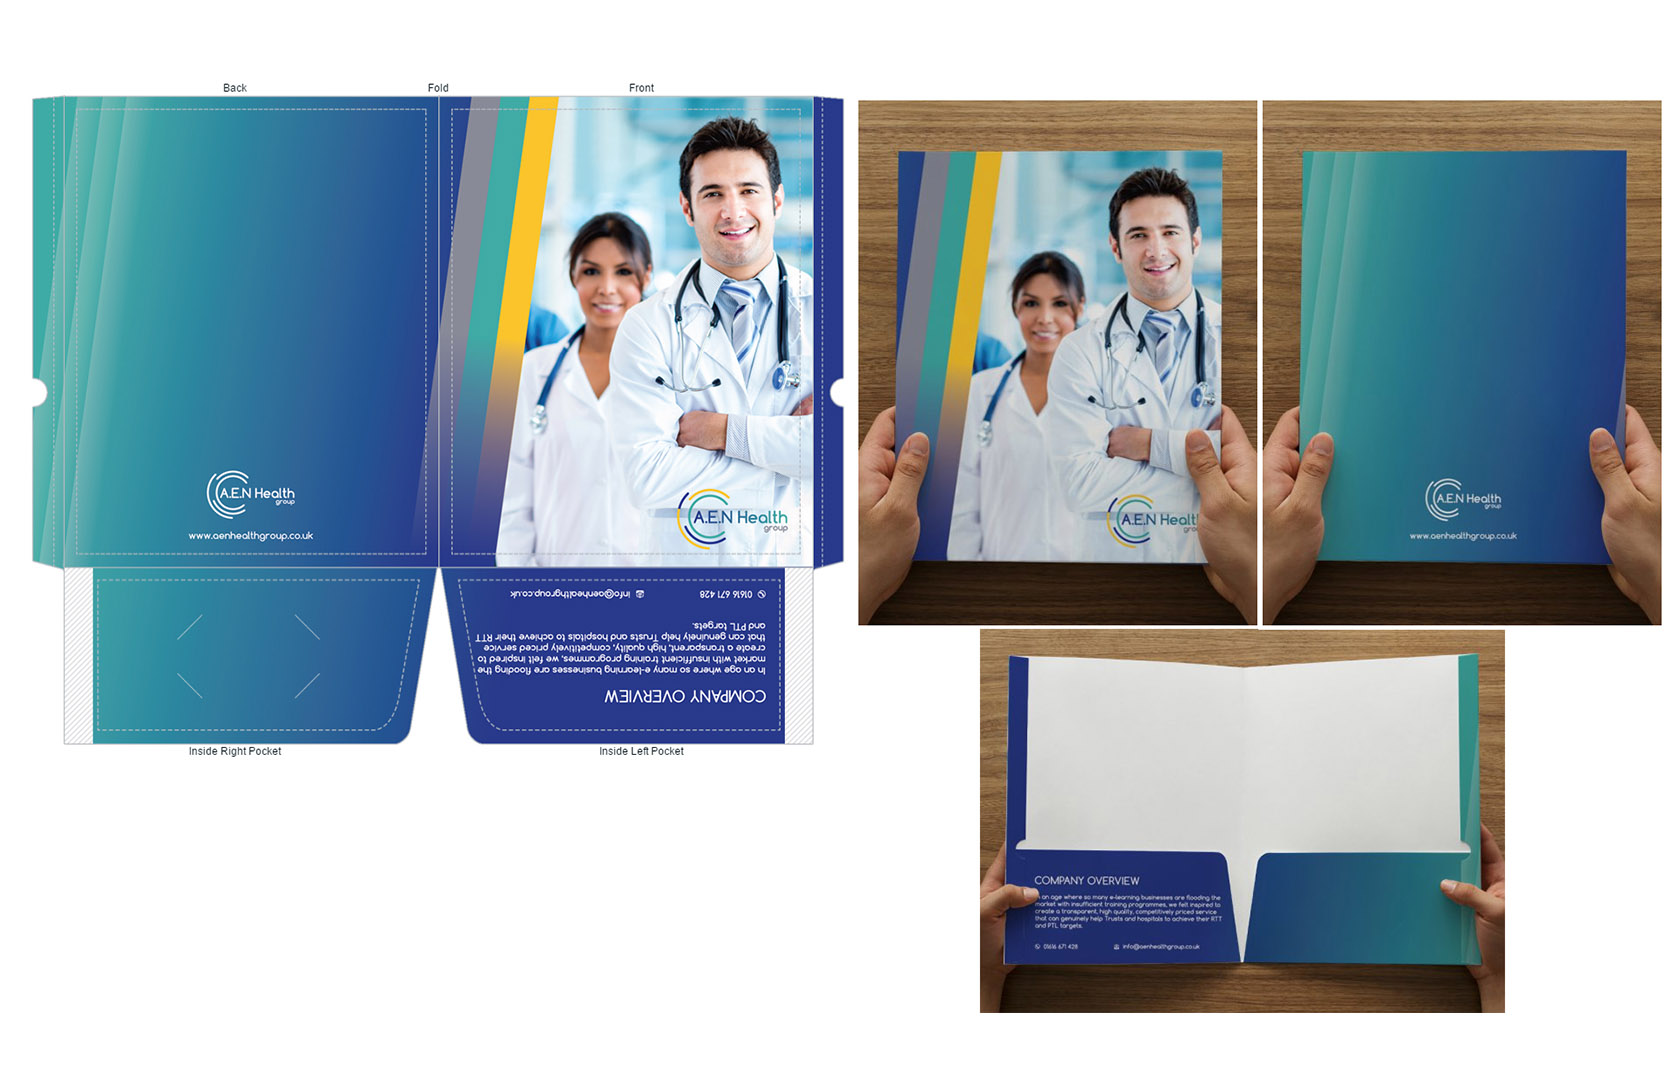 Aen health group folder